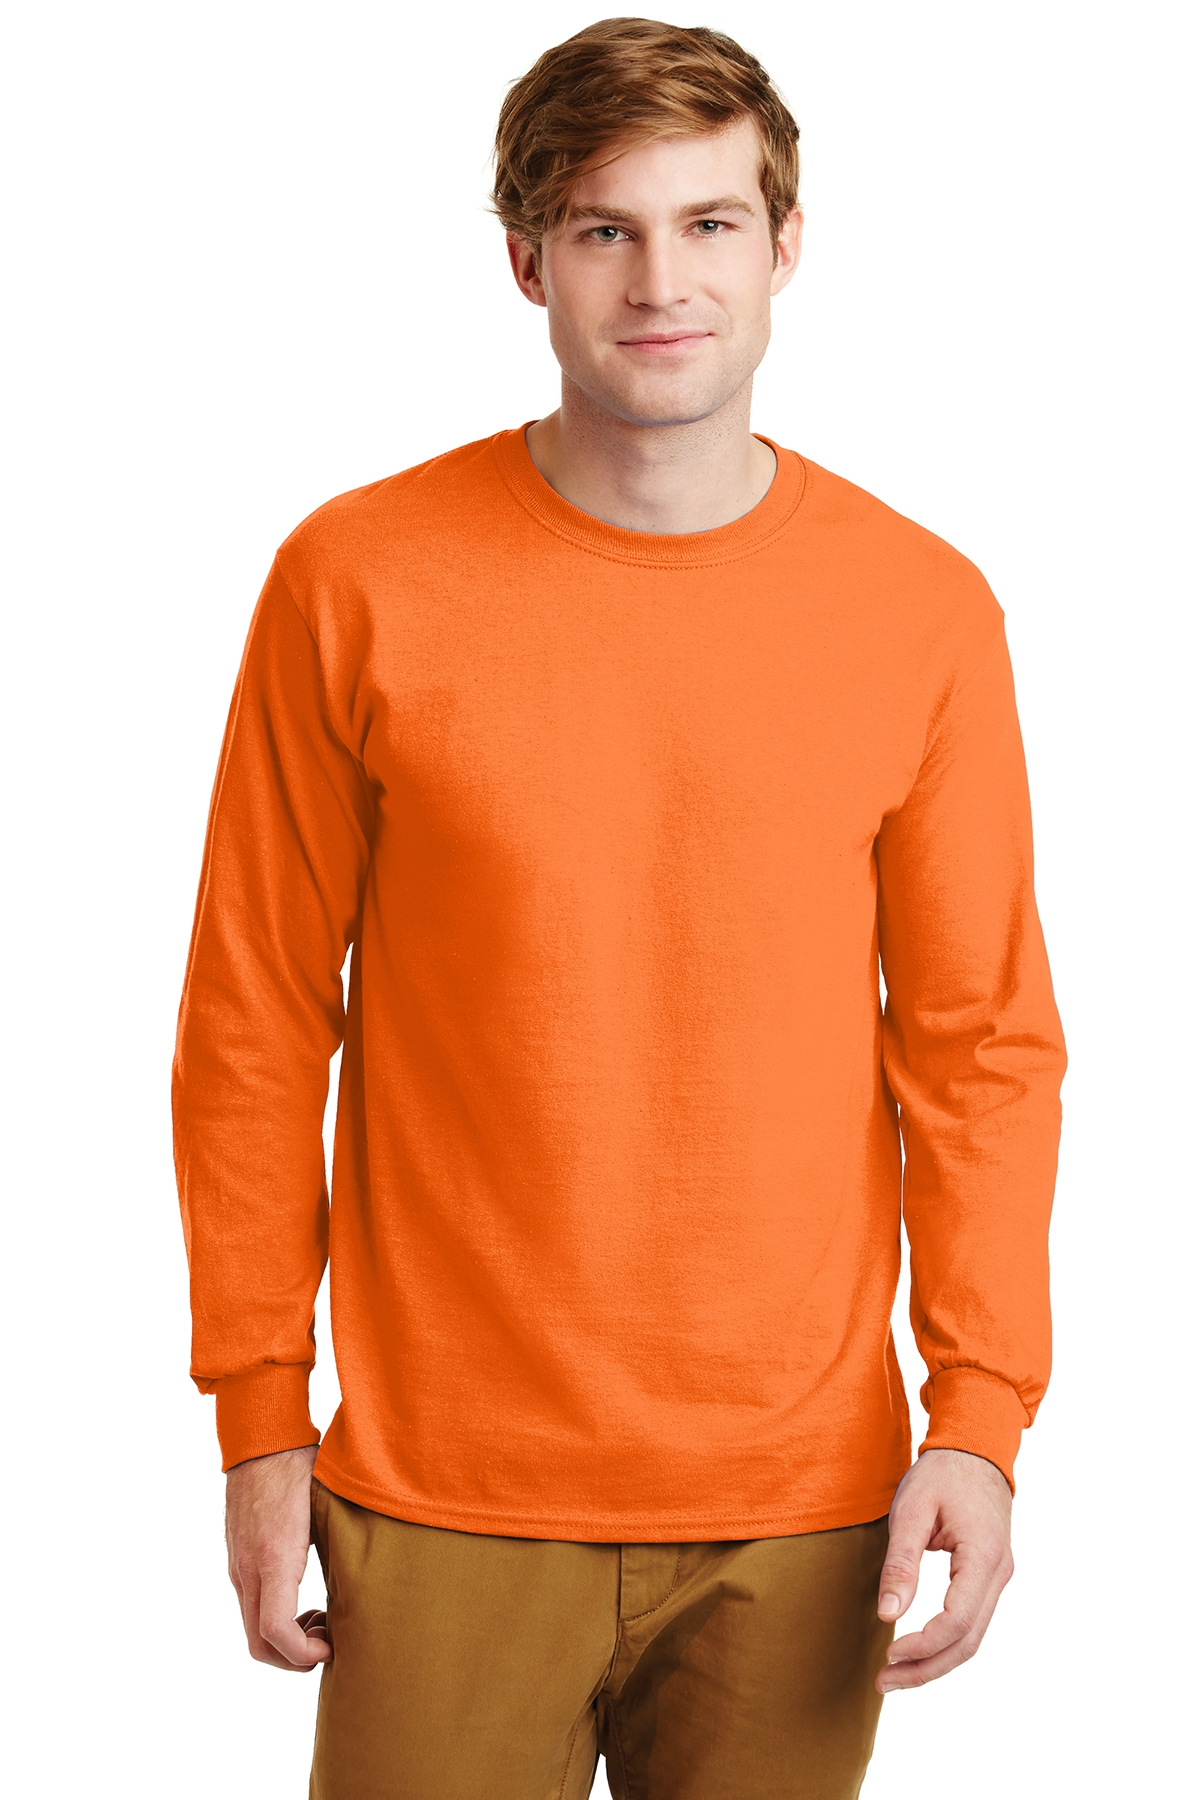 MLAG240LS-ALLG-Ultra Cotton® 100% Cotton Long Sleeve T-Shirt